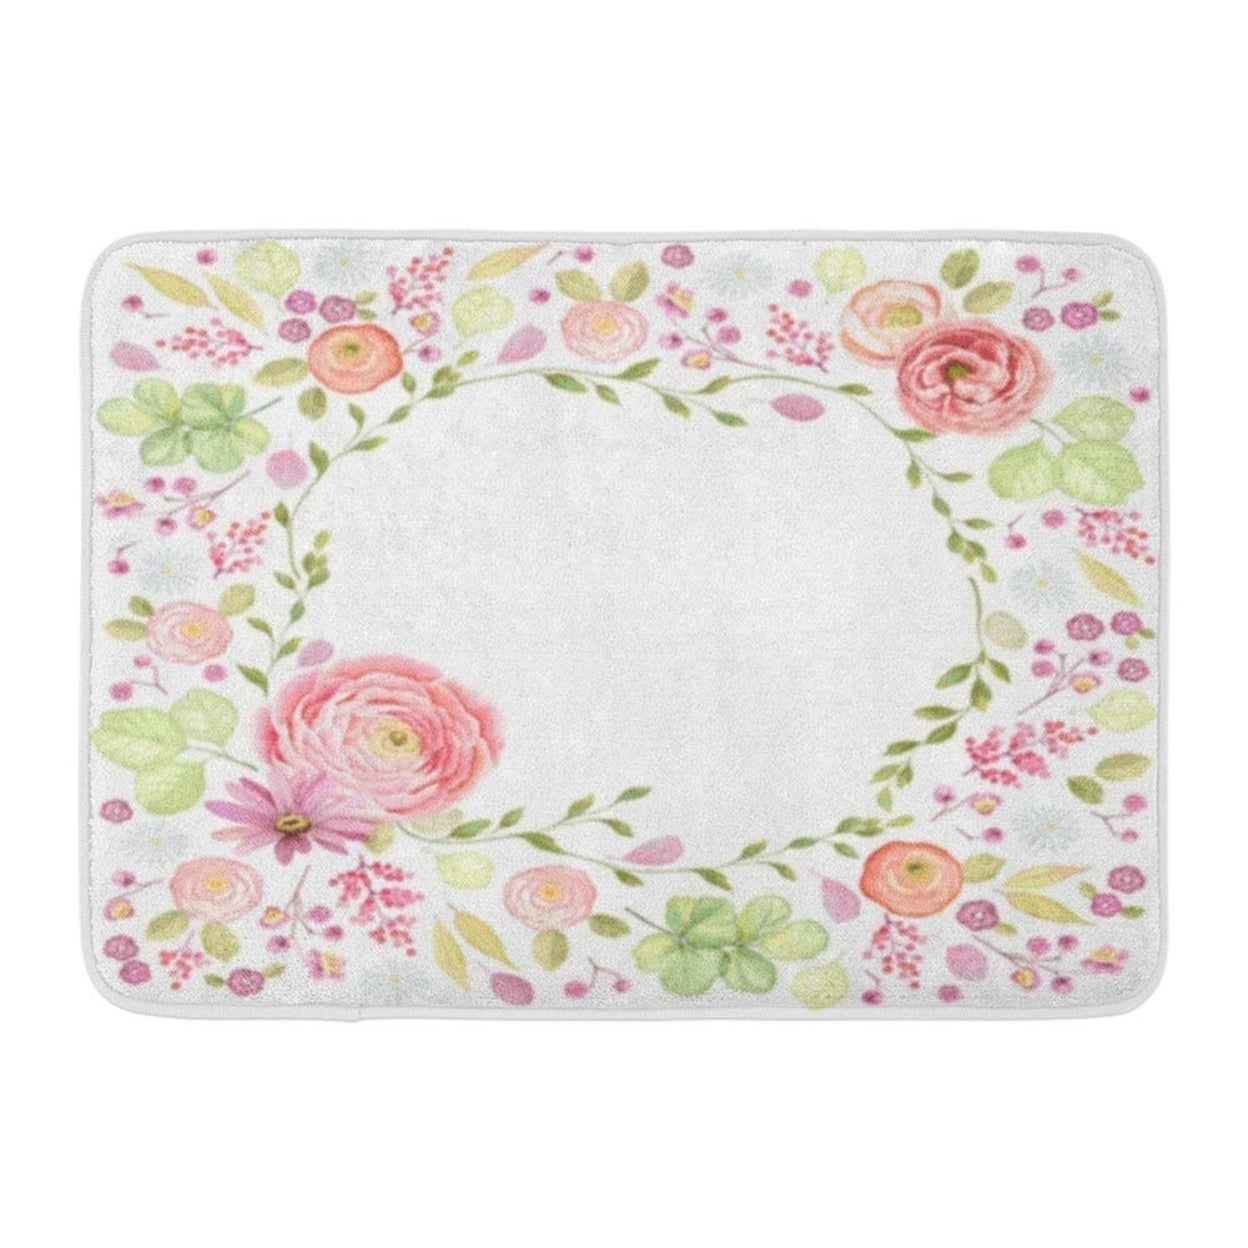 Made Of Flowers And Leaves Window Floral Butterfly In Vintage Watercolor Doormat Floor Rug Bath Mat 30x18 Inch Multi On Sale Overstock 31779493